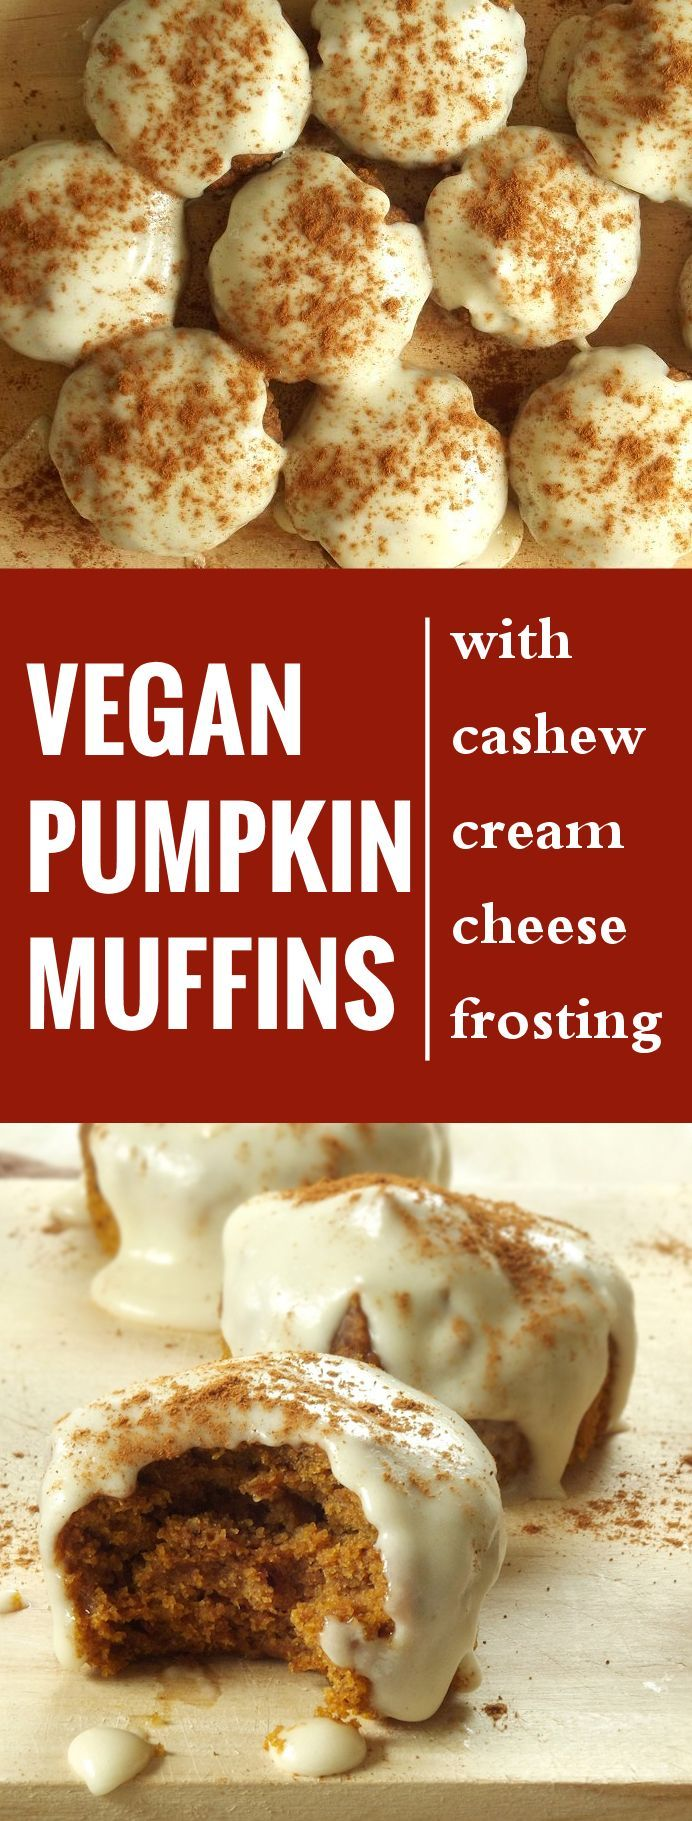 Vegan Pumpkin Muffins with Cashew Cream Cheese Frosting